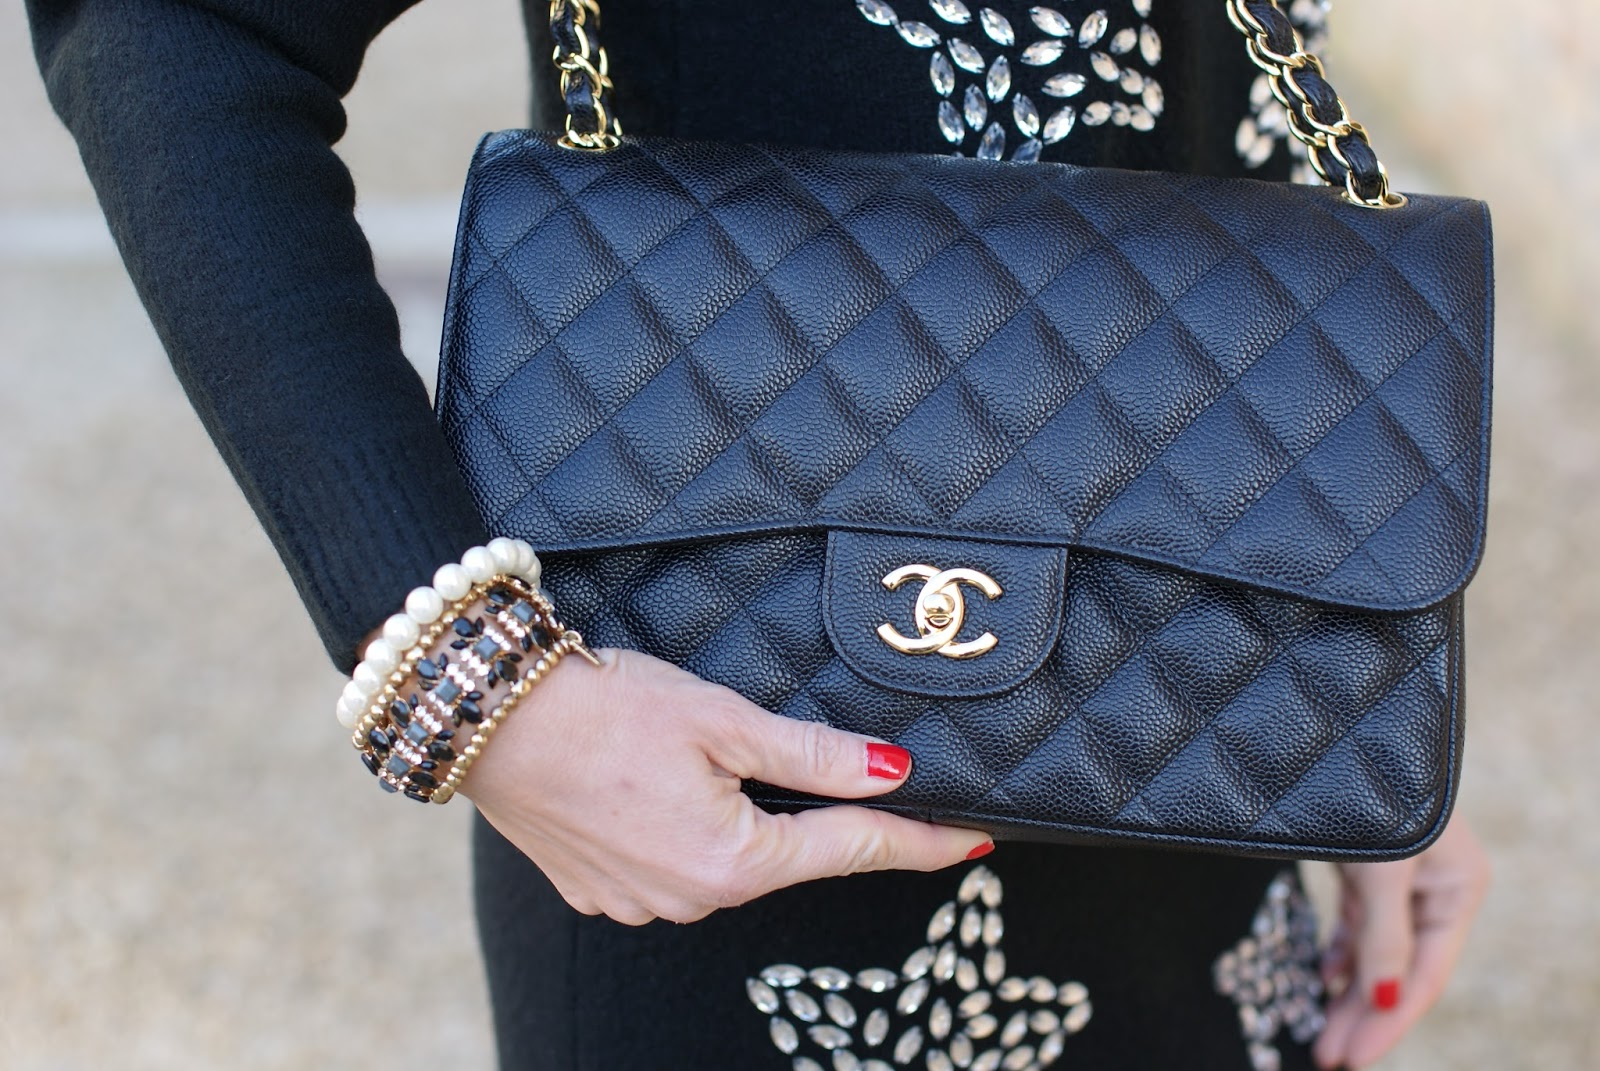 Chanel 2.55 caviar leather bag on Fashion and Cookies fashion blog, fashion blogger style